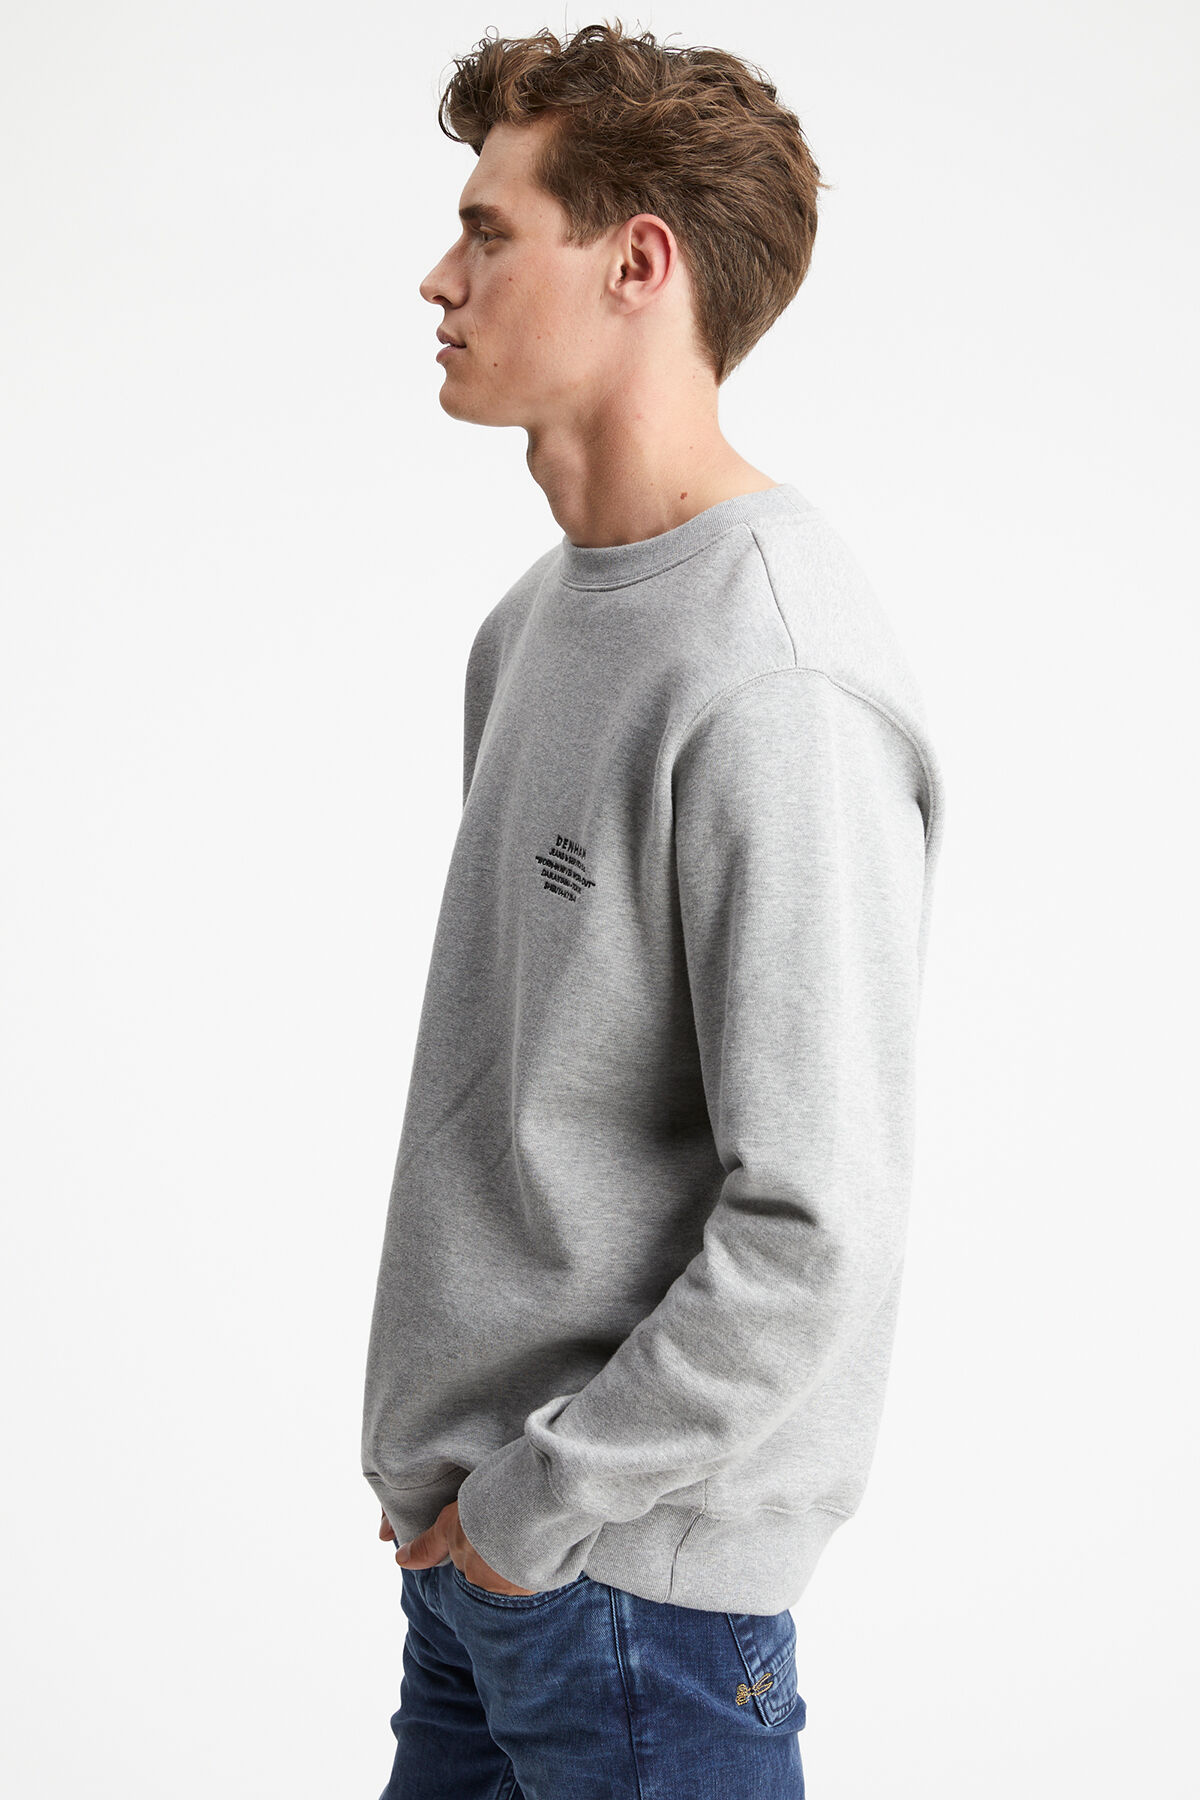 TRINITY SWEAT Contrast Embroidery - Oversized Fit